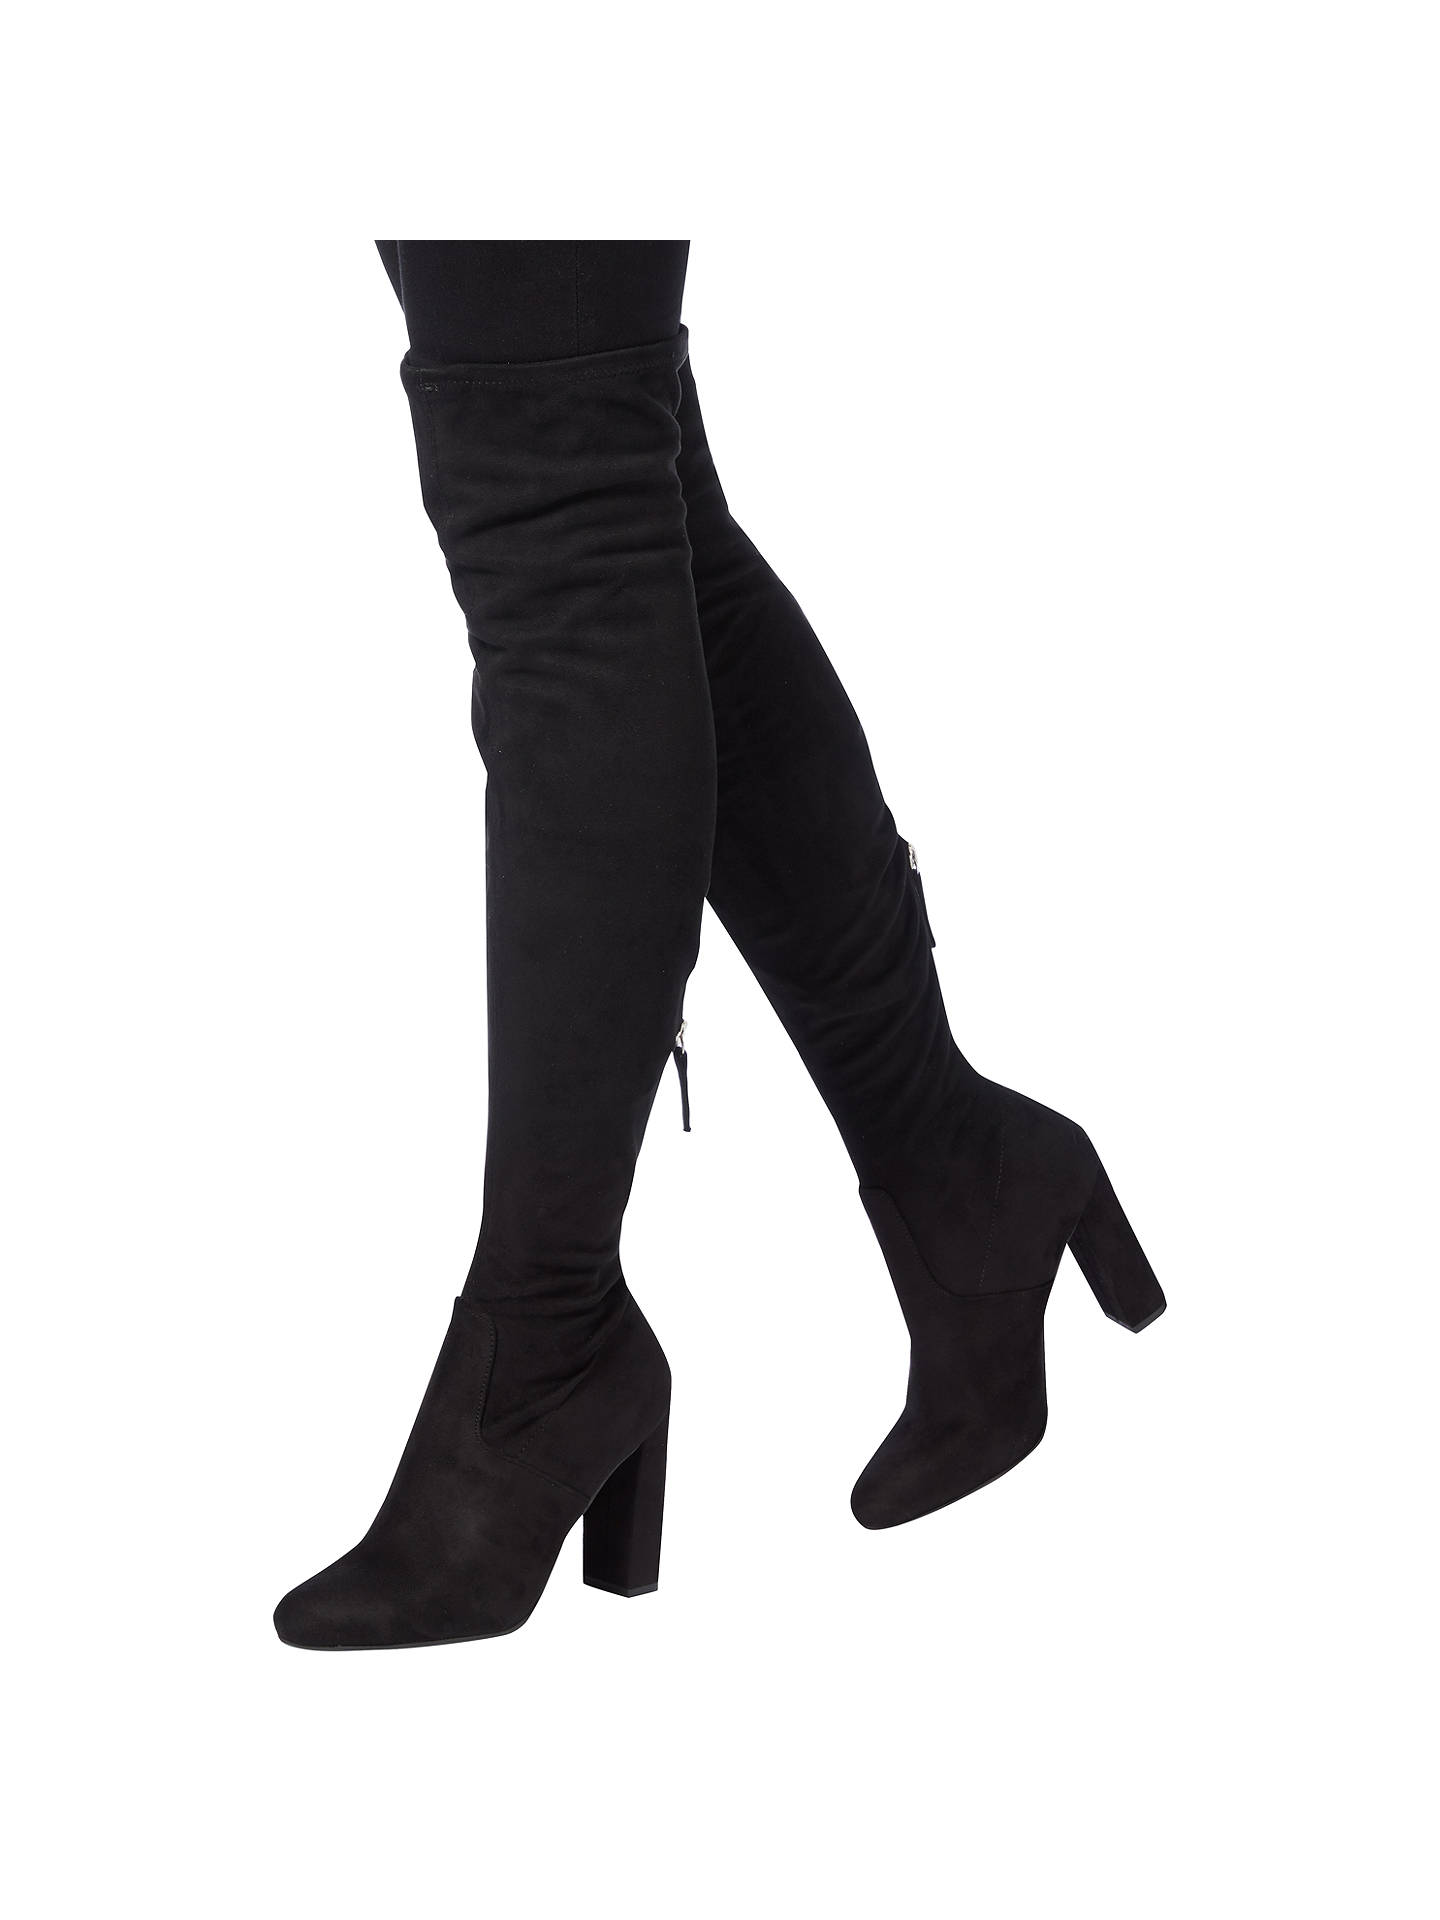 379c35c7d4d ... Buy Steve Madden Emotions Block Heeled Over the Knee Boots